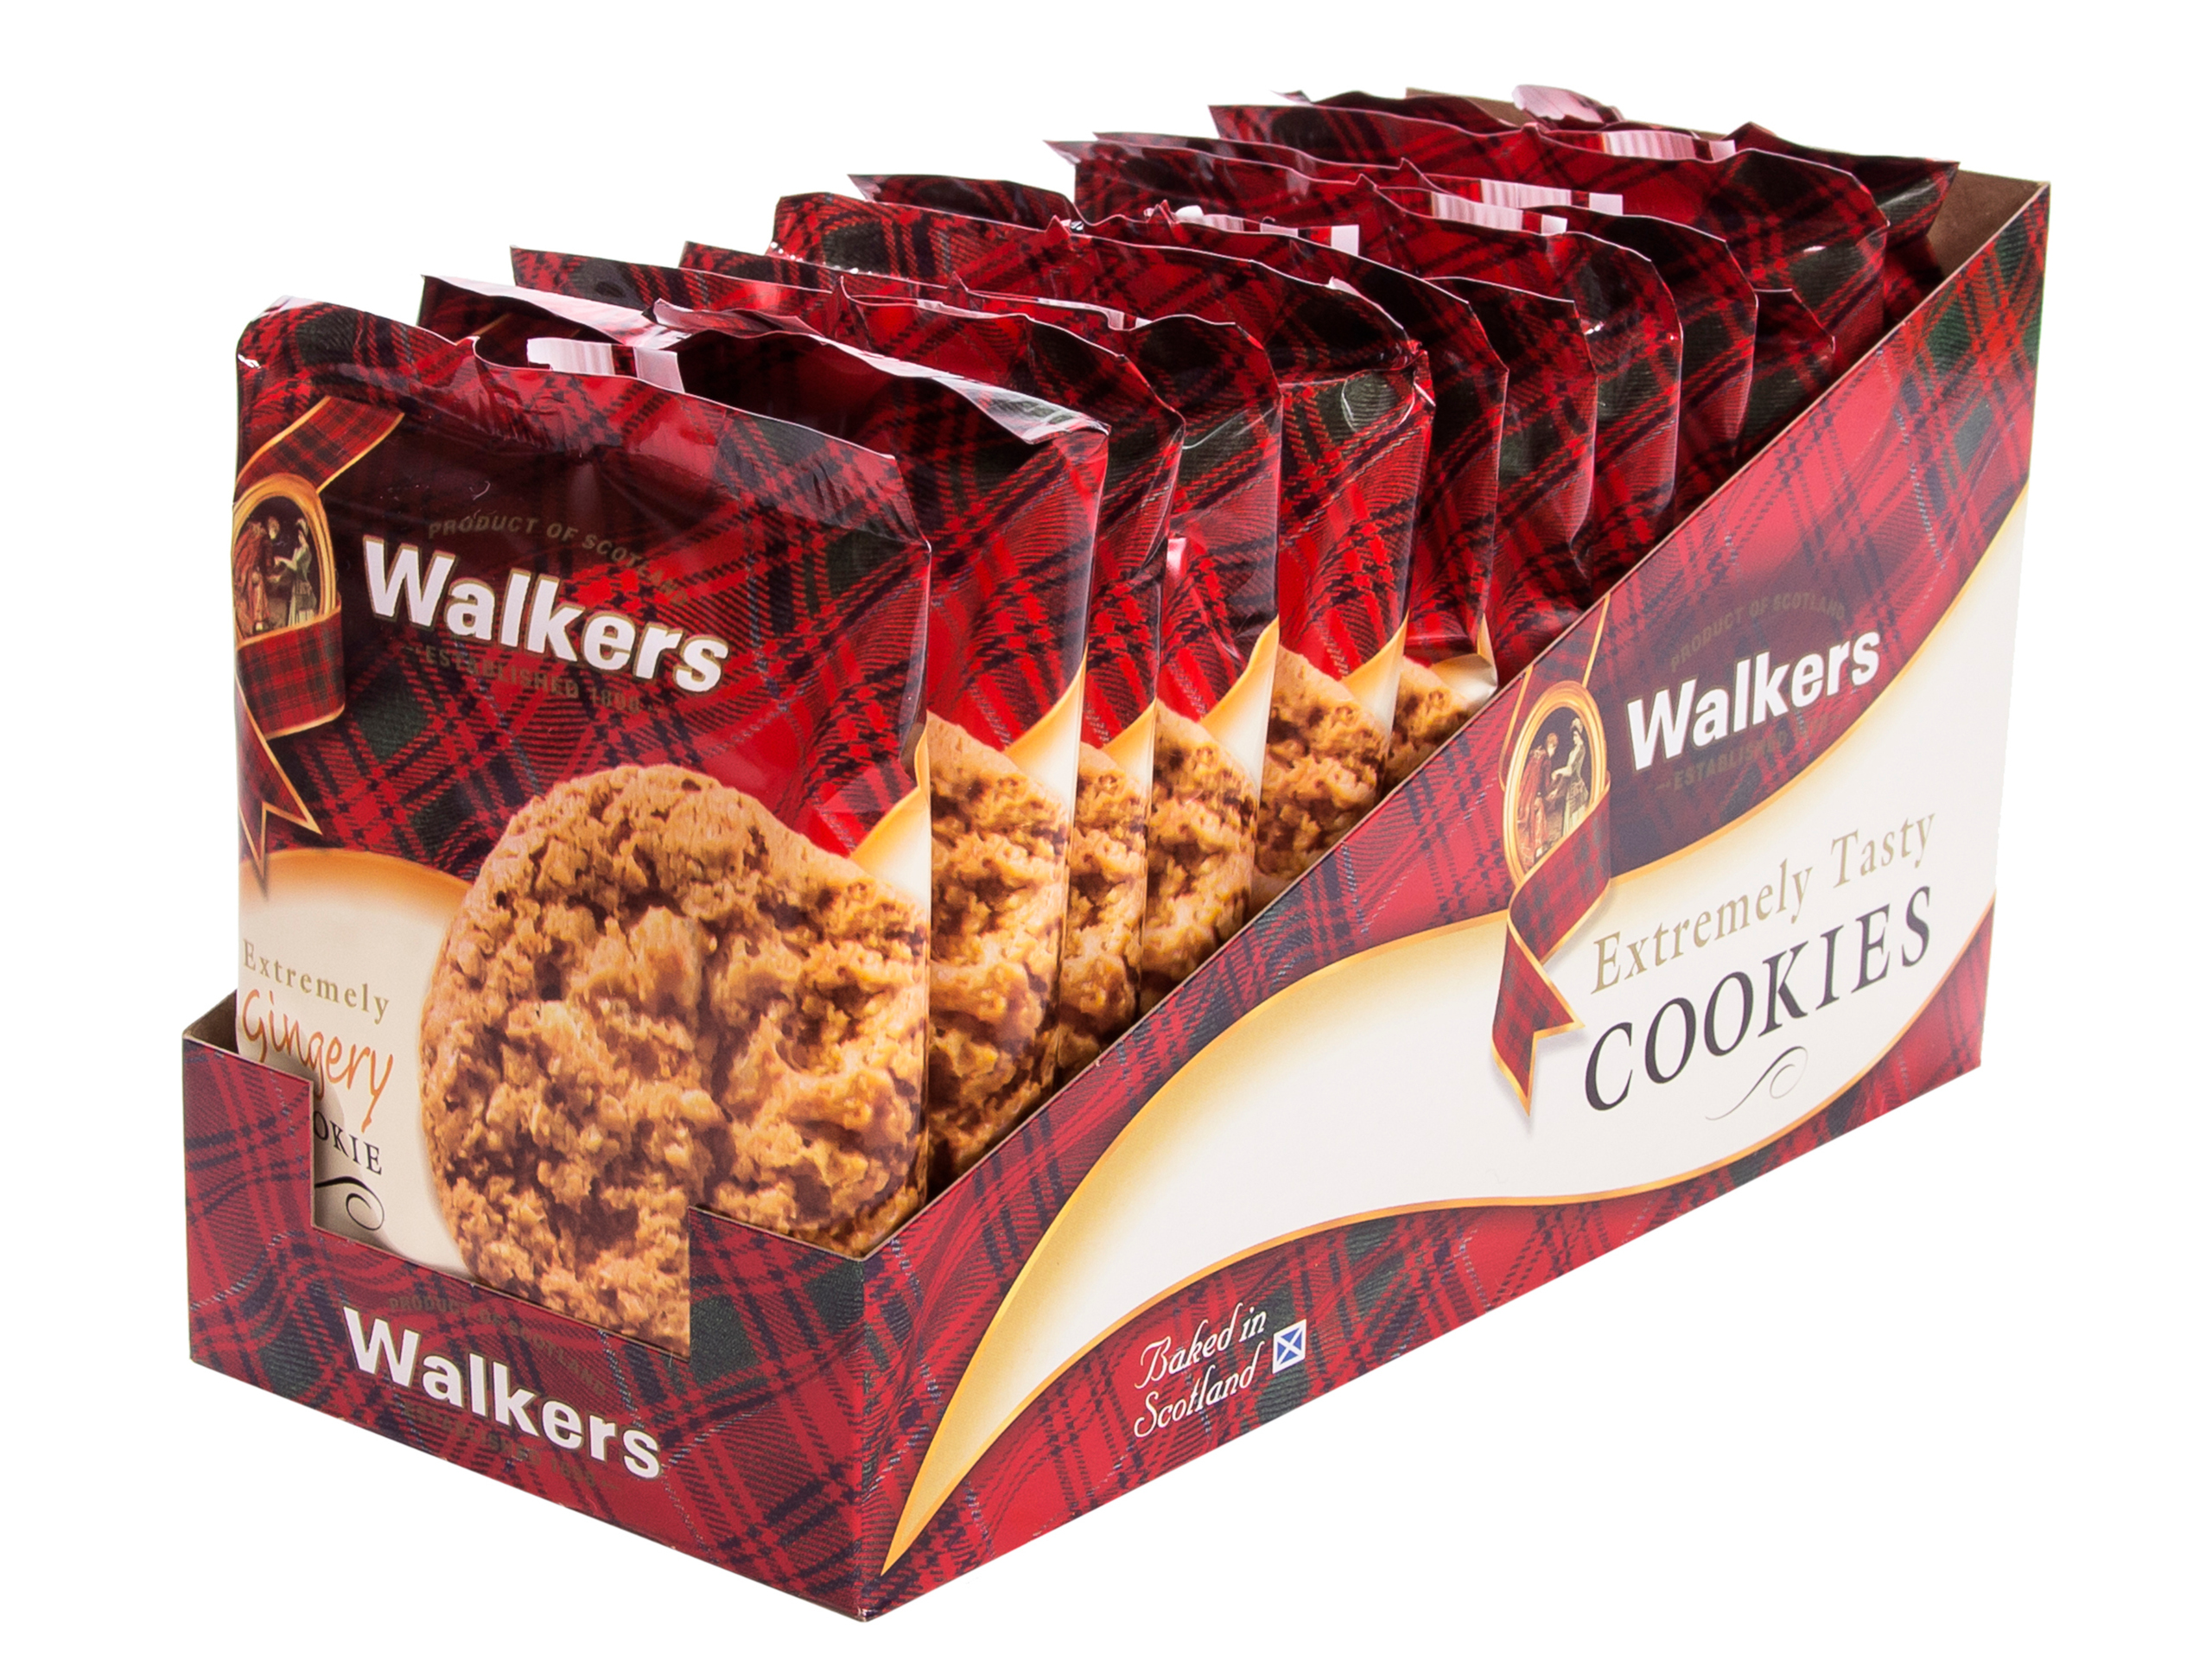 Extremely Gingery Walkers Shortbread Cookie Box